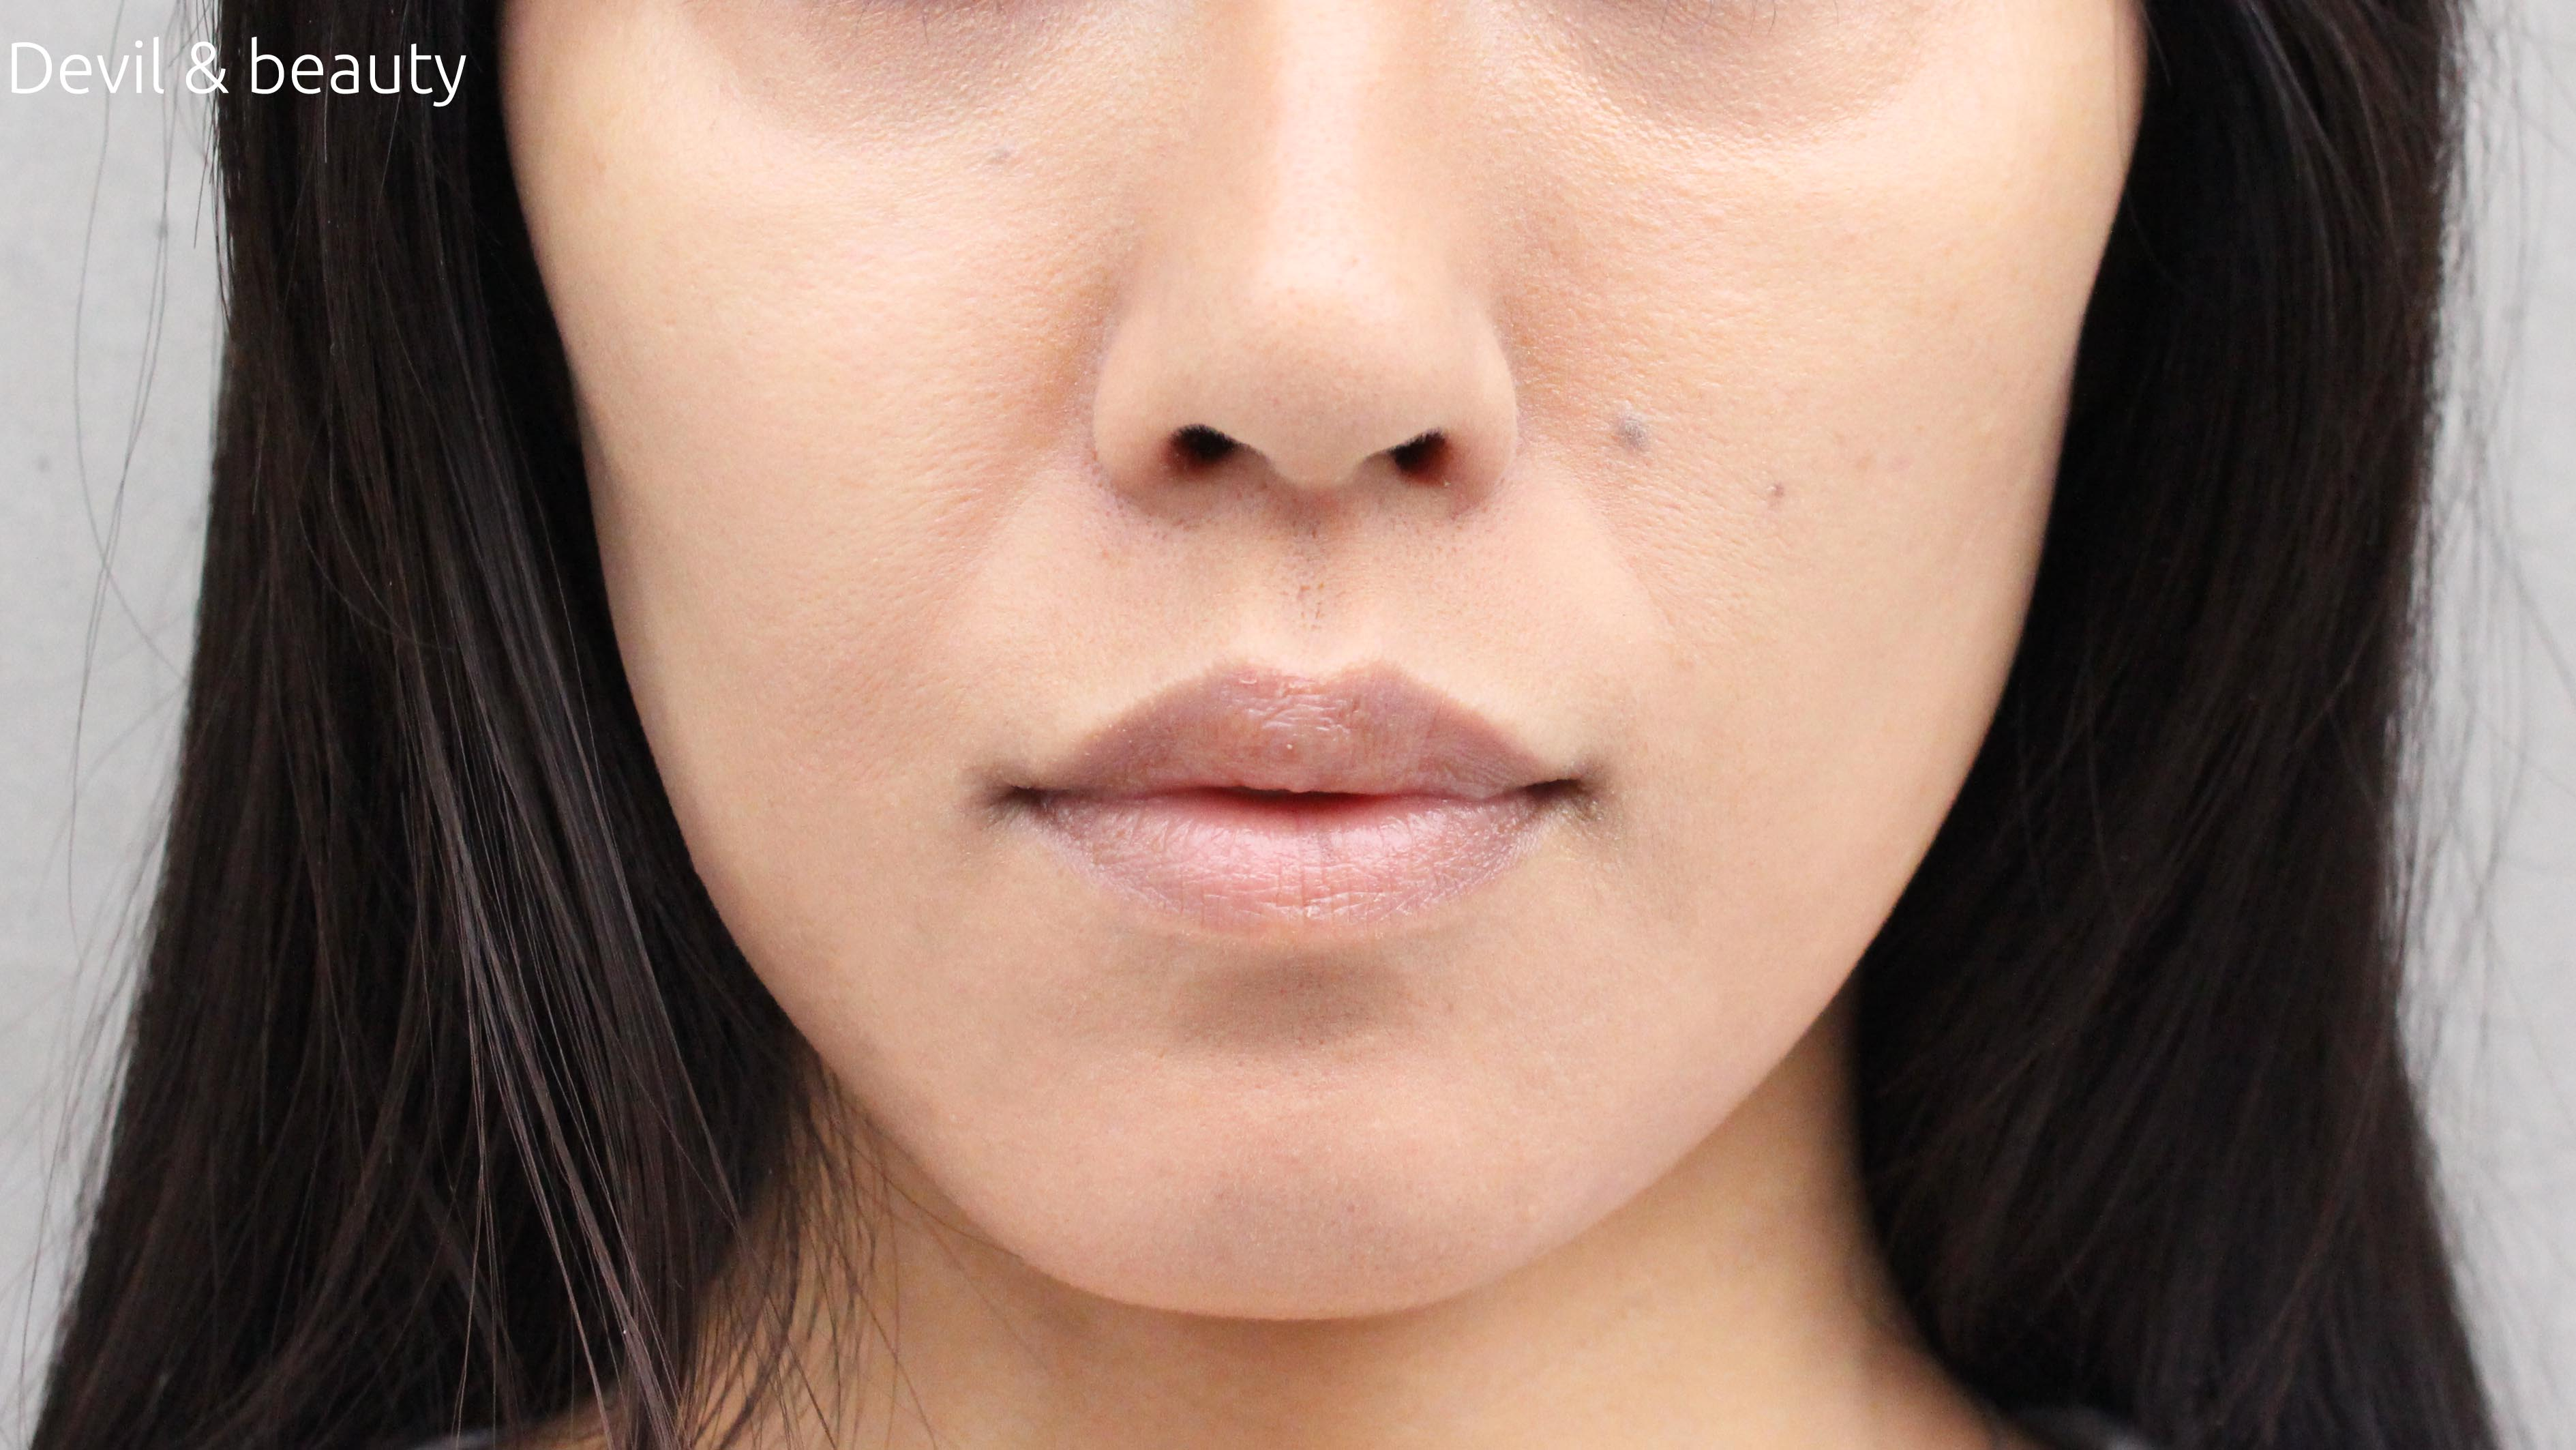 bareminerals-invisible-light11-1 - image